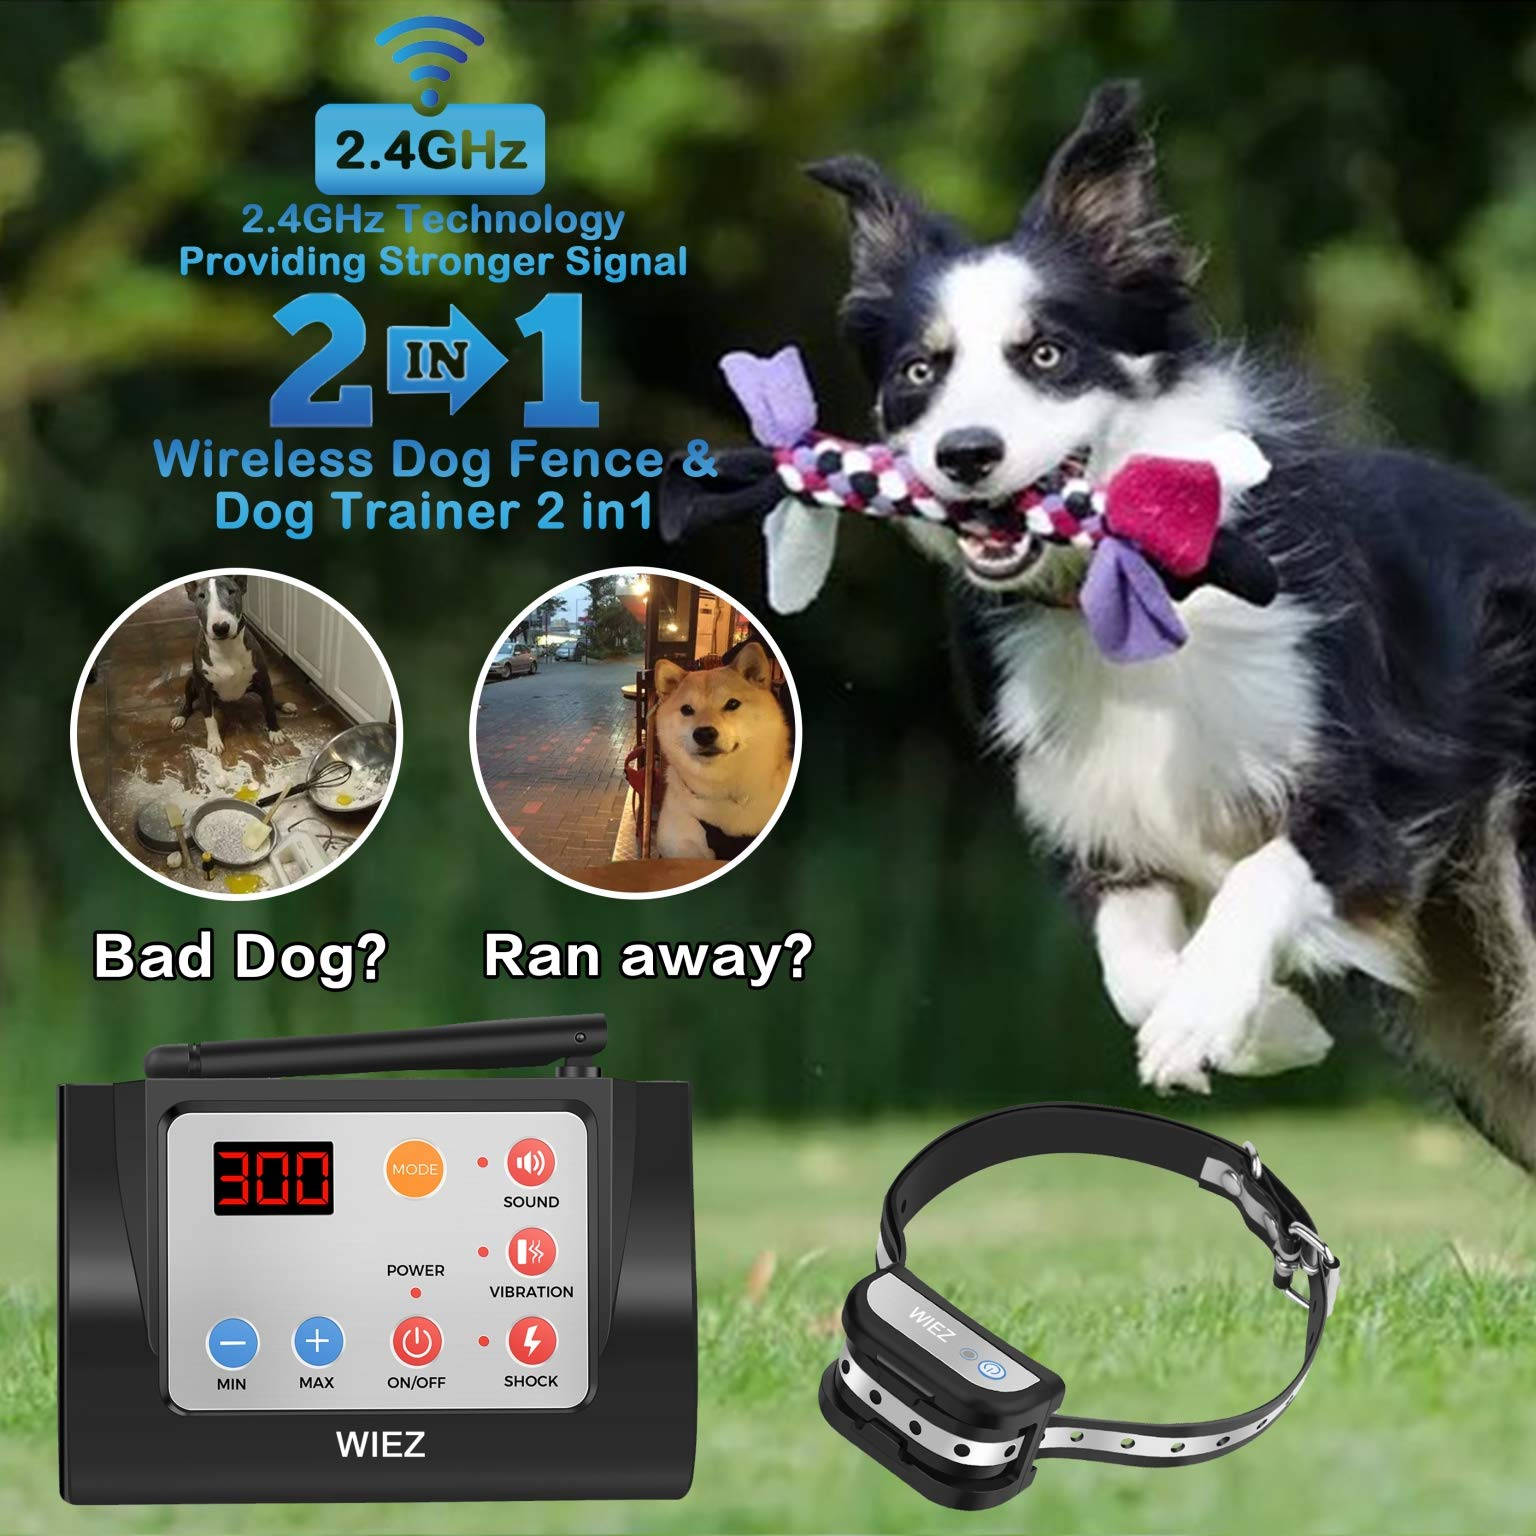 WIEZ Dog Fence Wireless & Training Collar Outdoor 2-in-1, Electric Wireless Fence for Dogs w/Remote, Adjustable Range Control, Waterproof Reflective Stripe Collar, Harmless for All Dogs by WIEZ